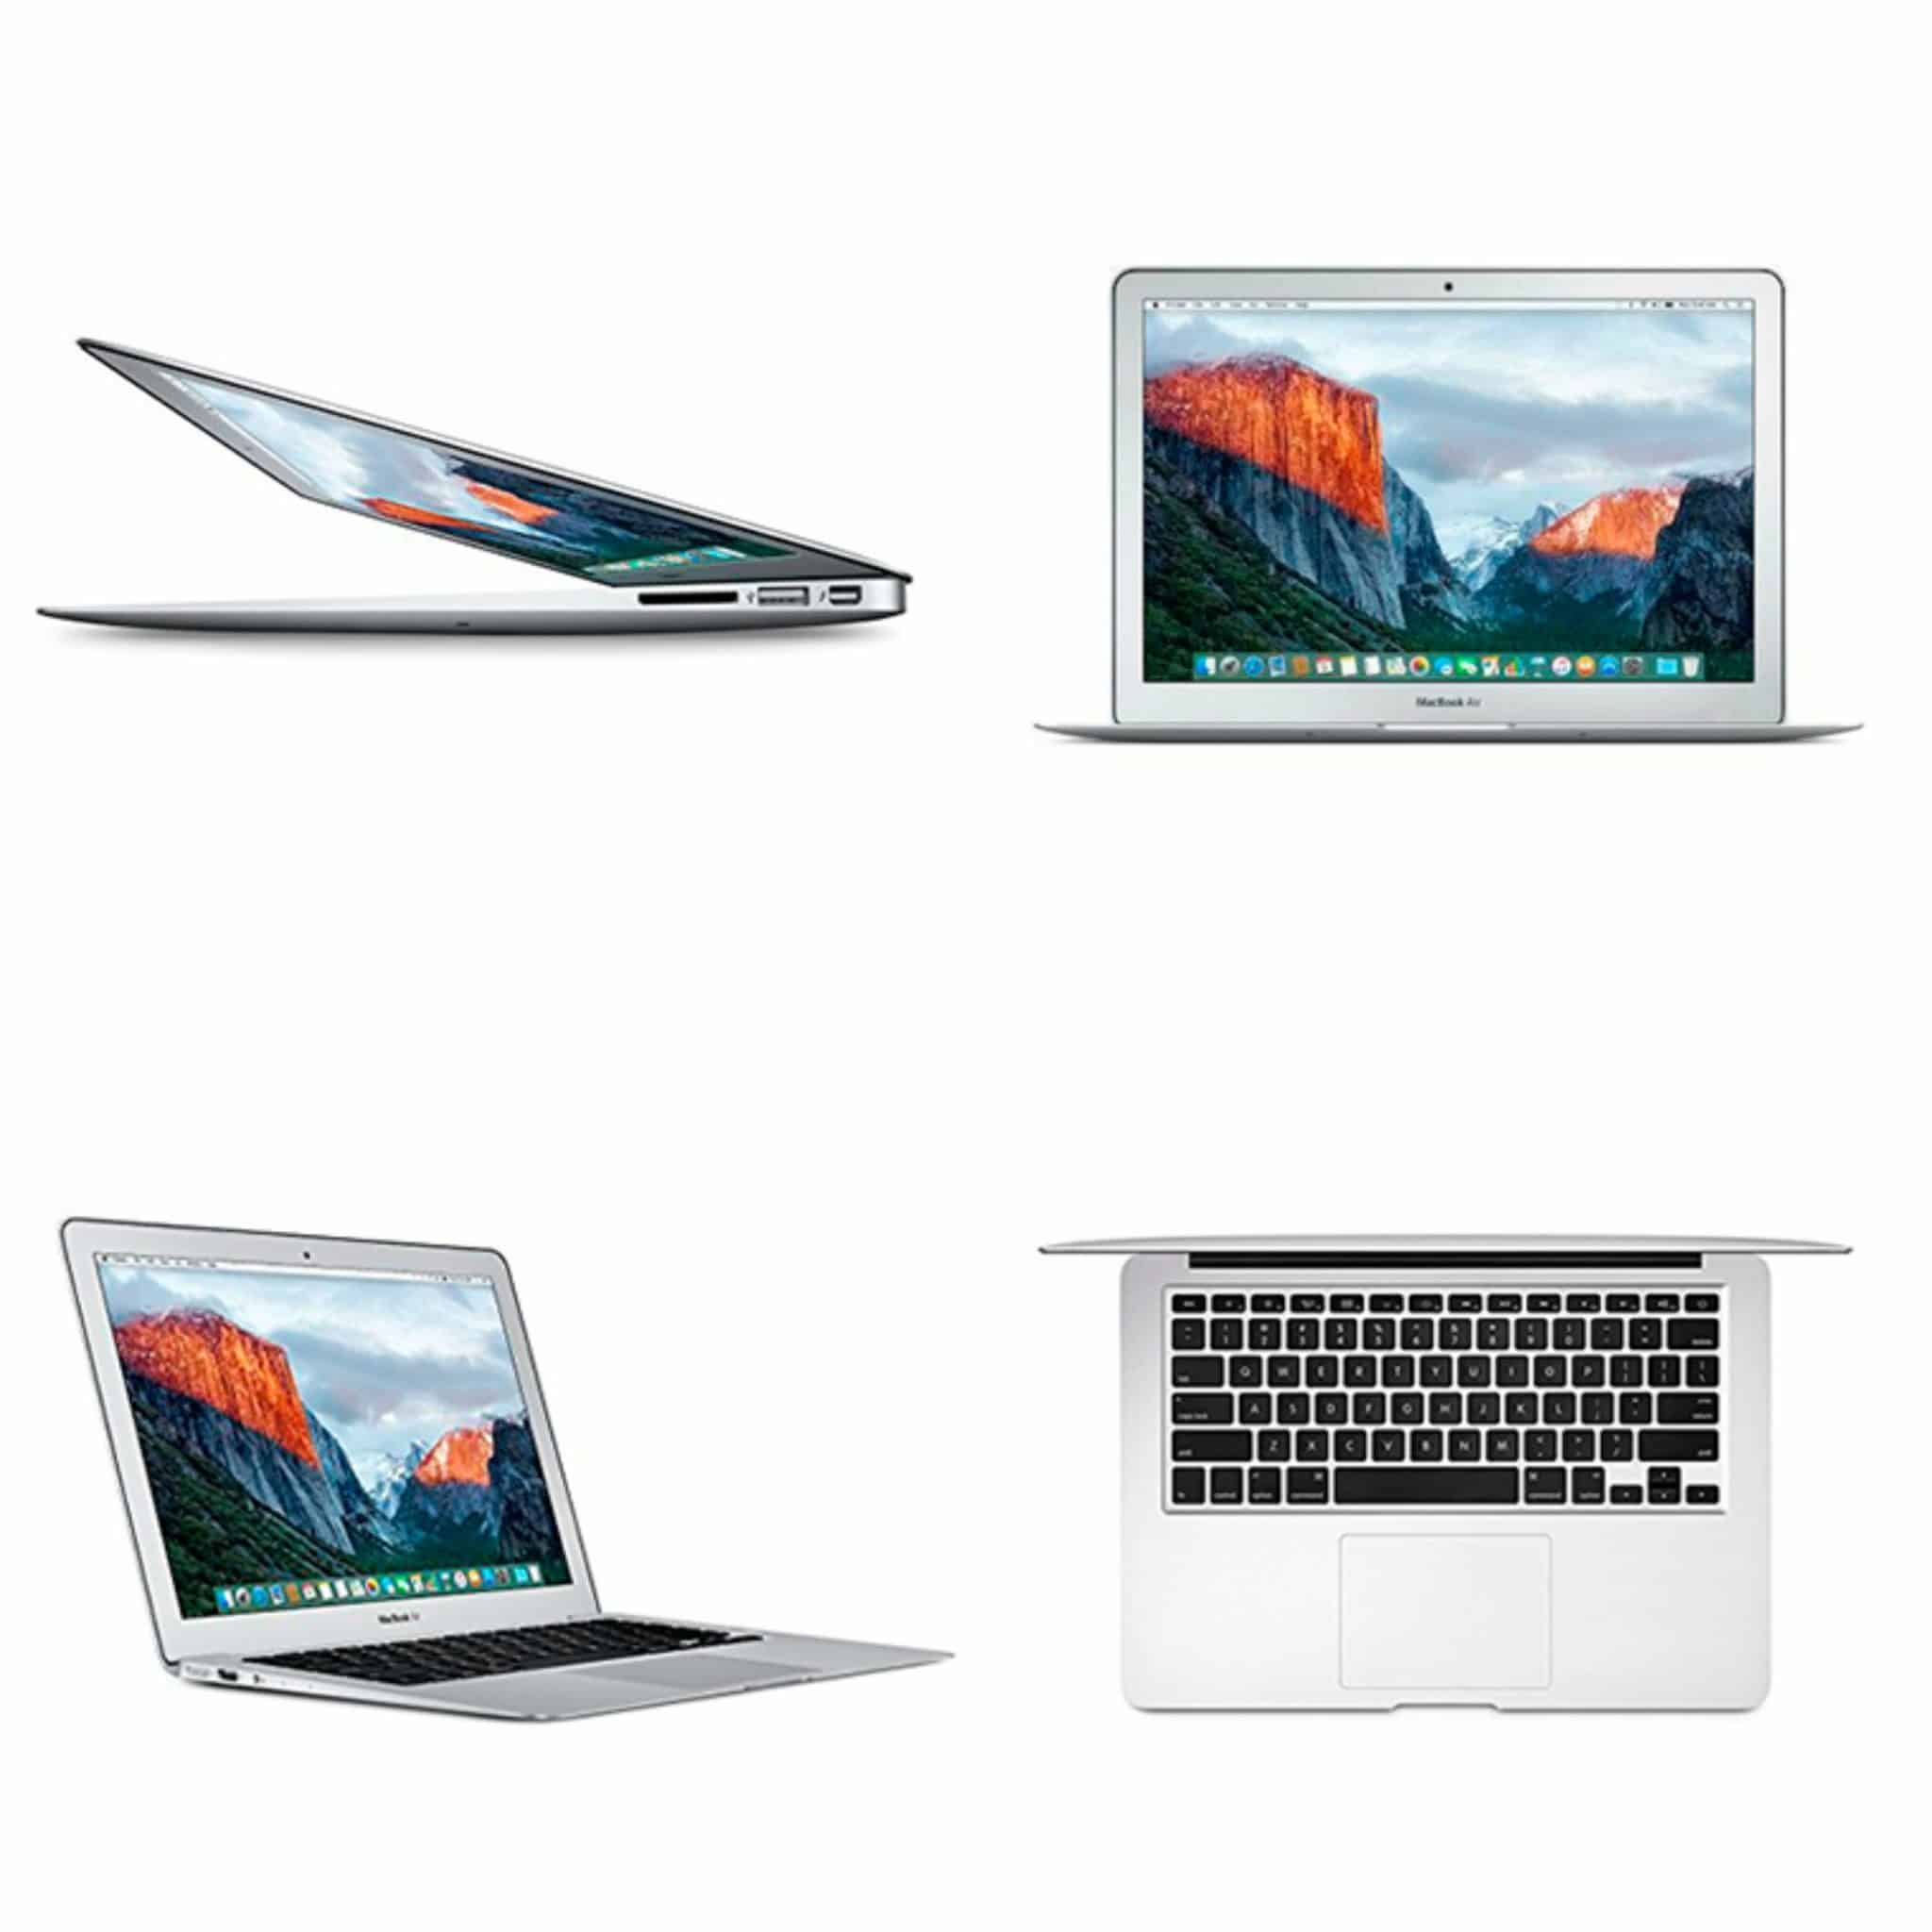 Apple MacBook Air - Portátil de 13 pulgadas